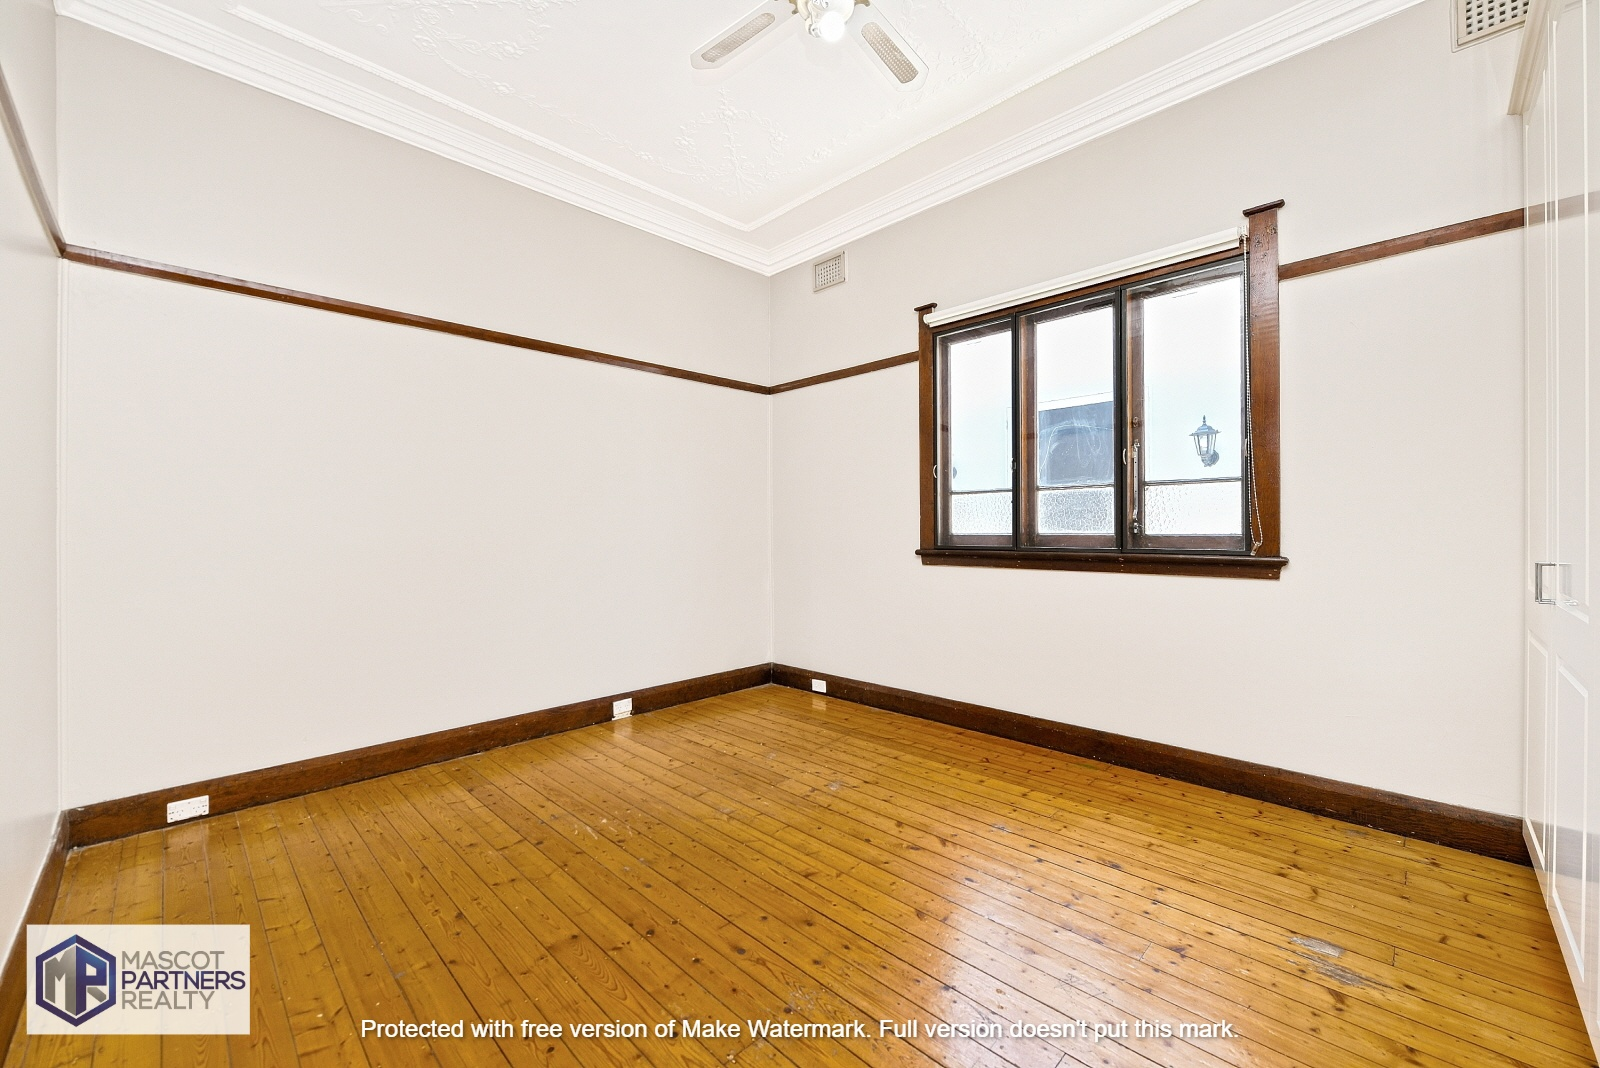 79 Robey Street, Mascot NSW 2020 (LEASED)